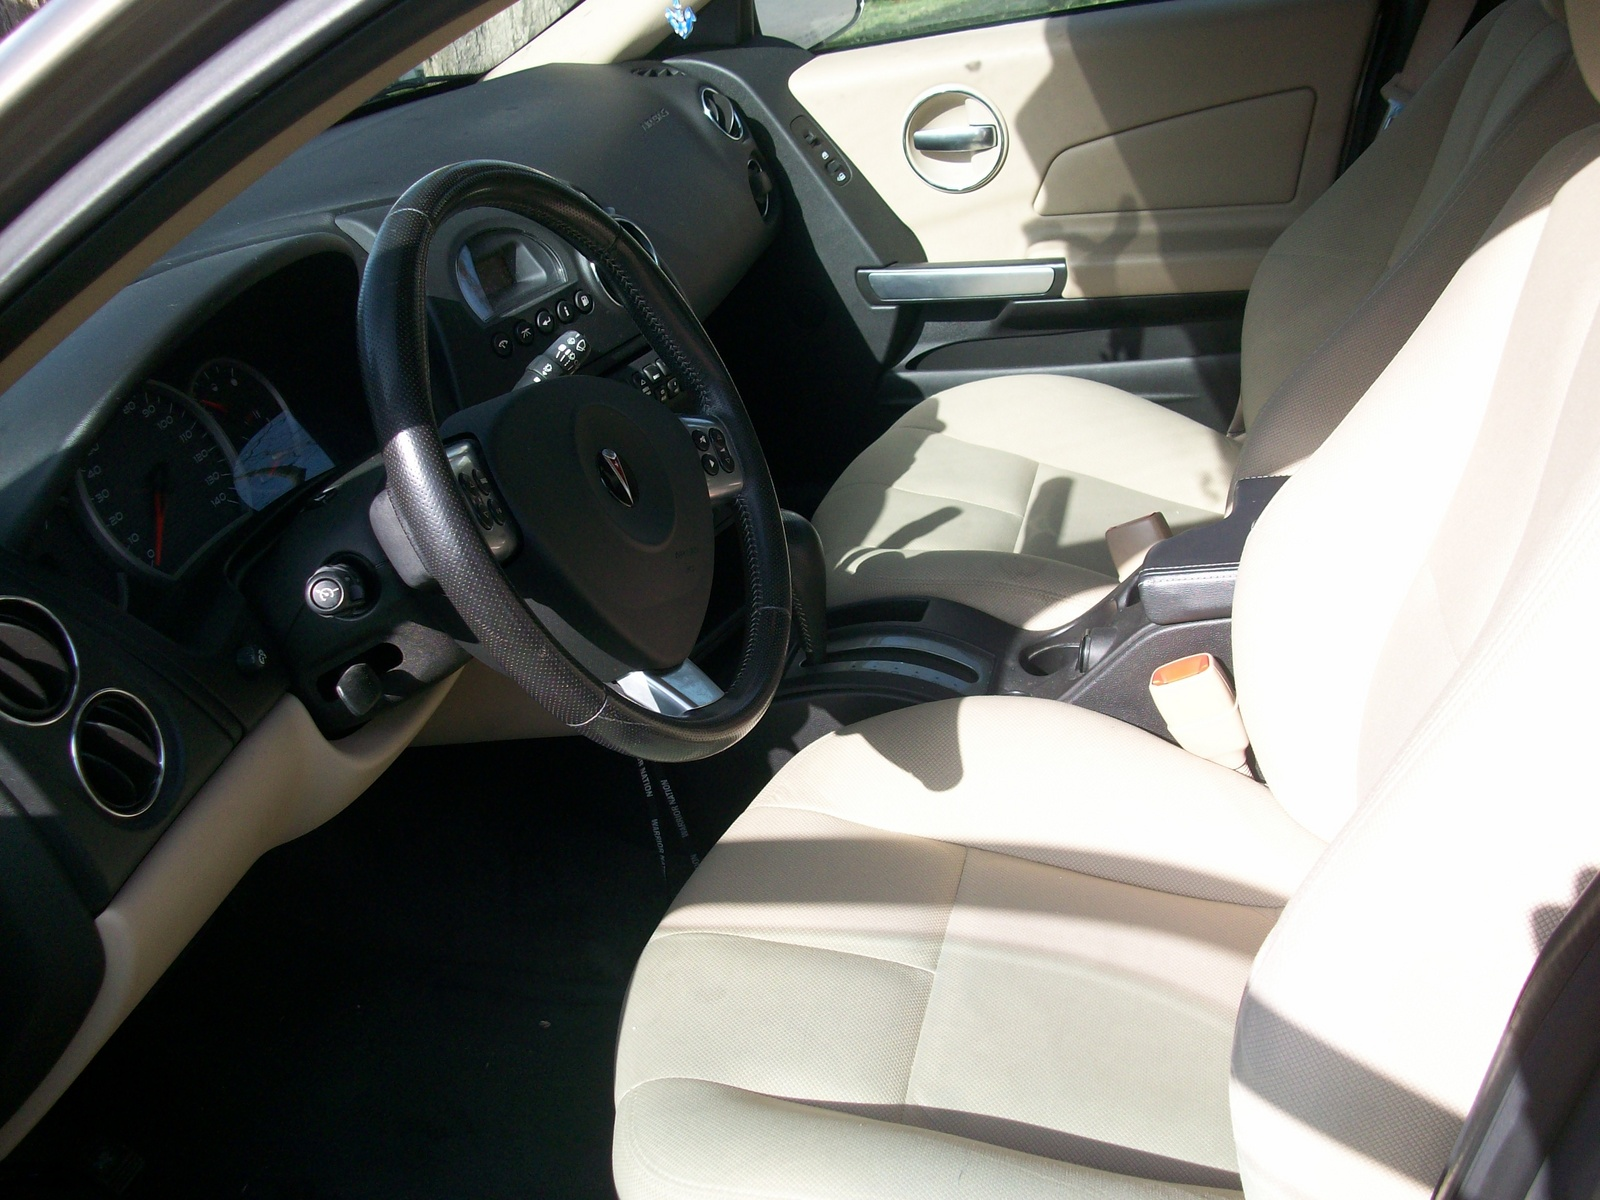 2007 Pontiac Grand Prix Interior Pictures Cargurus